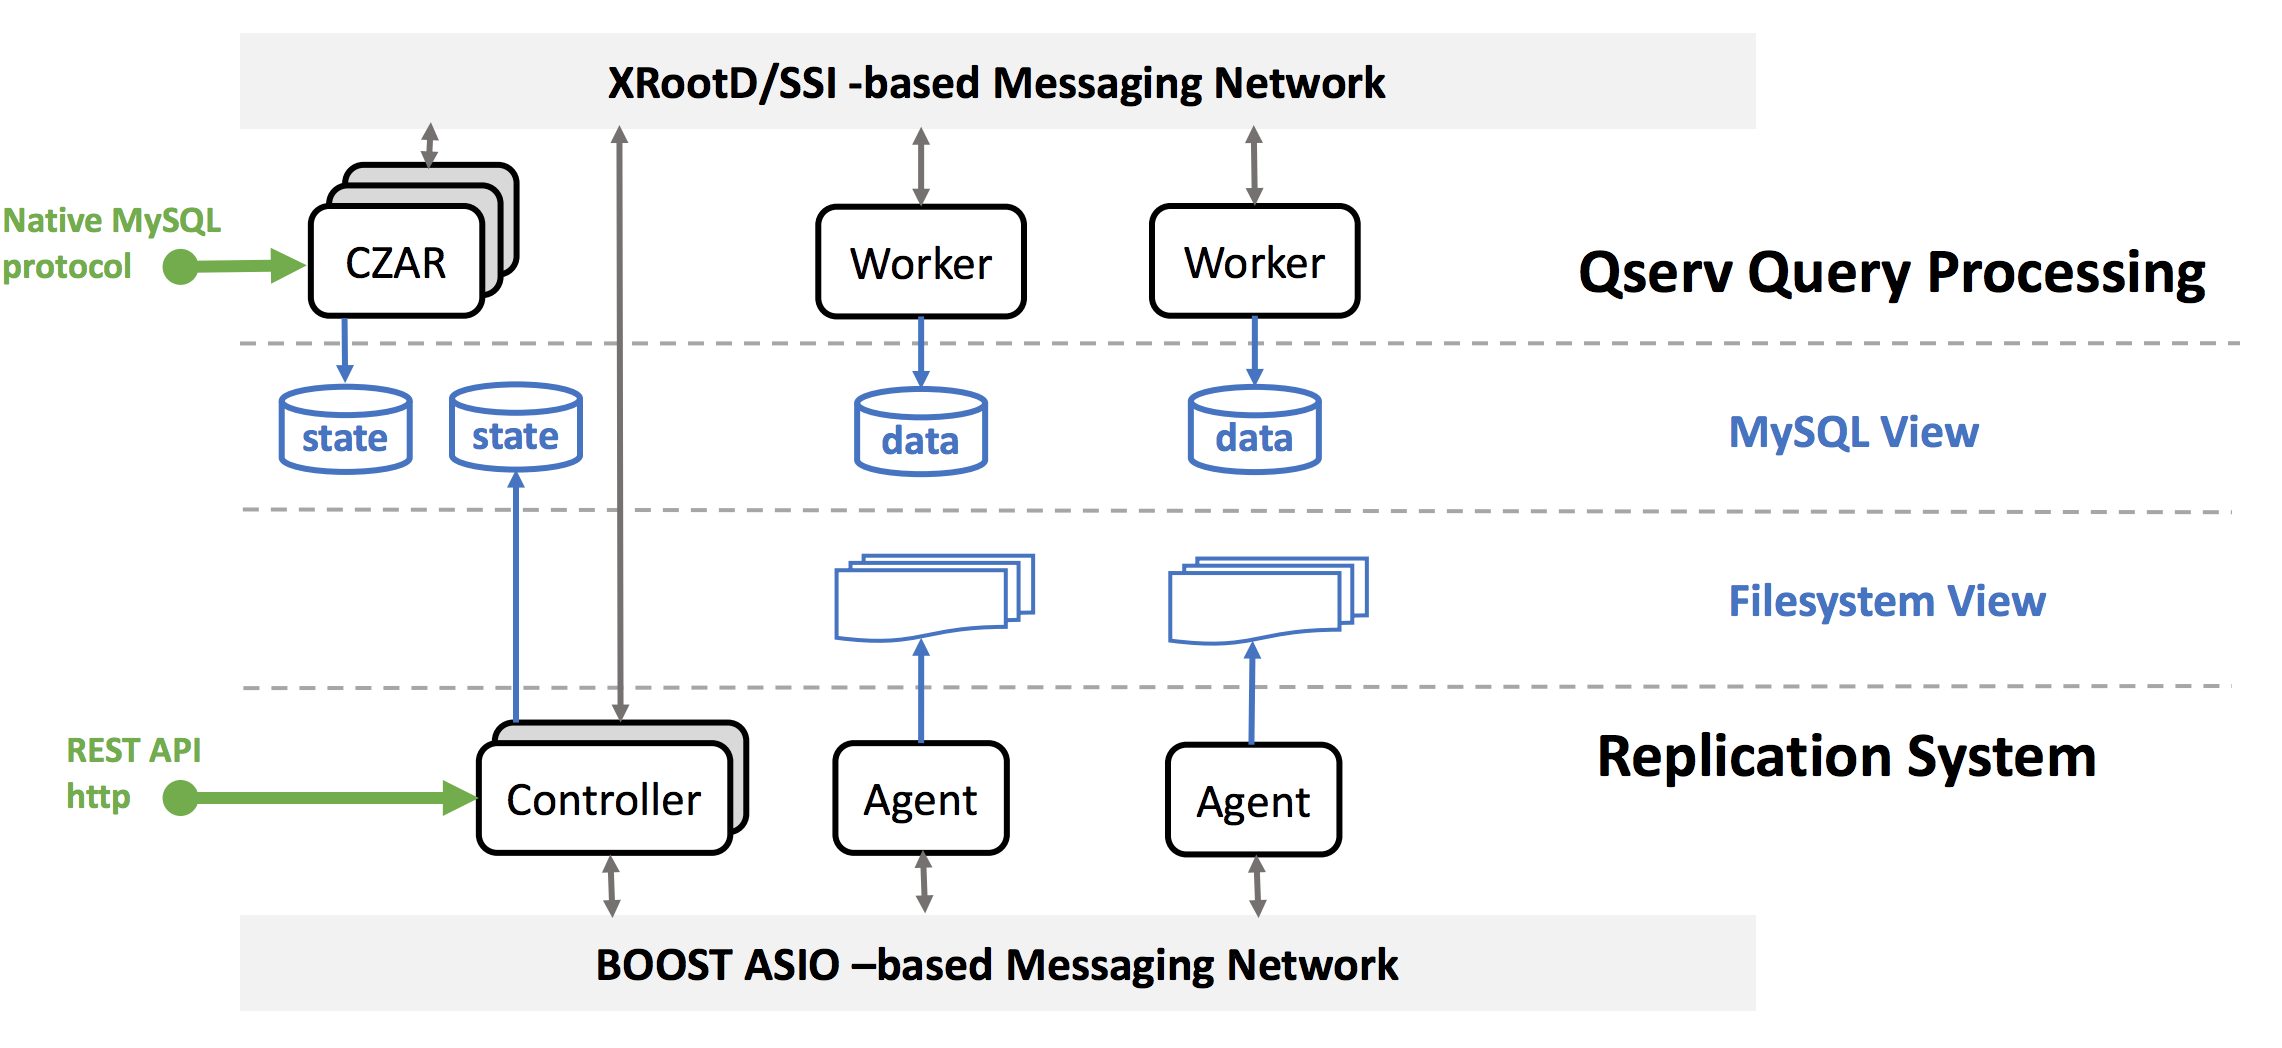 Deploying, configuring and operating the Qserv Replication